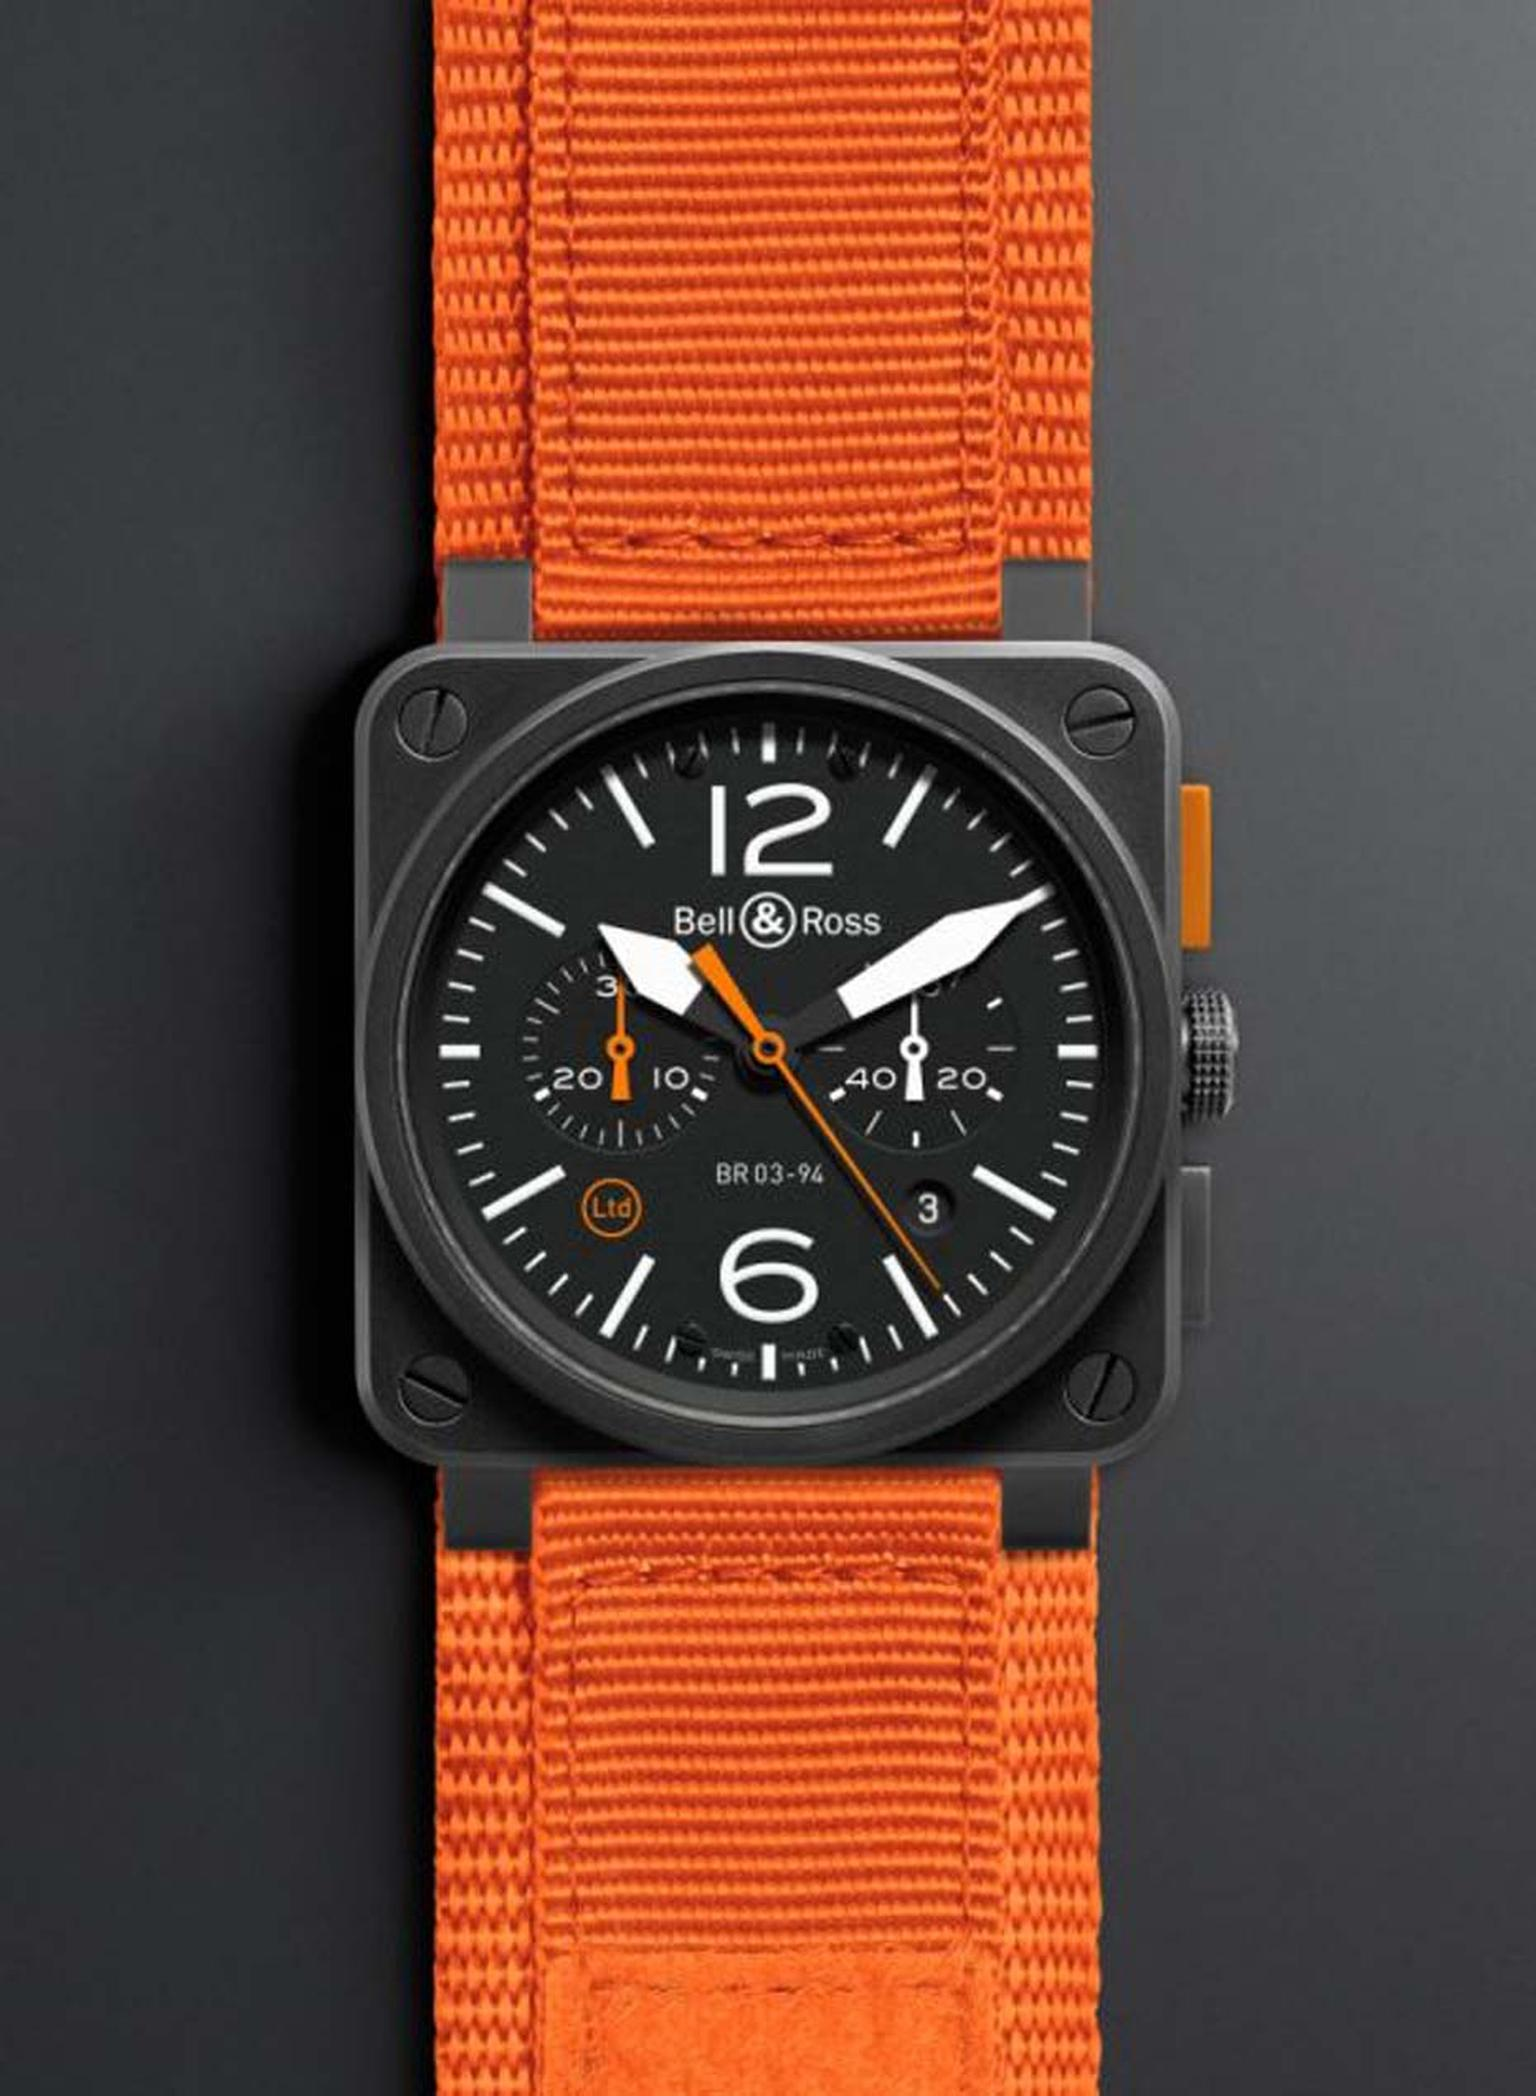 Bell & Ross' BR 03-94 carbon watch with orange strap comes in a limited edition of 500 pieces.